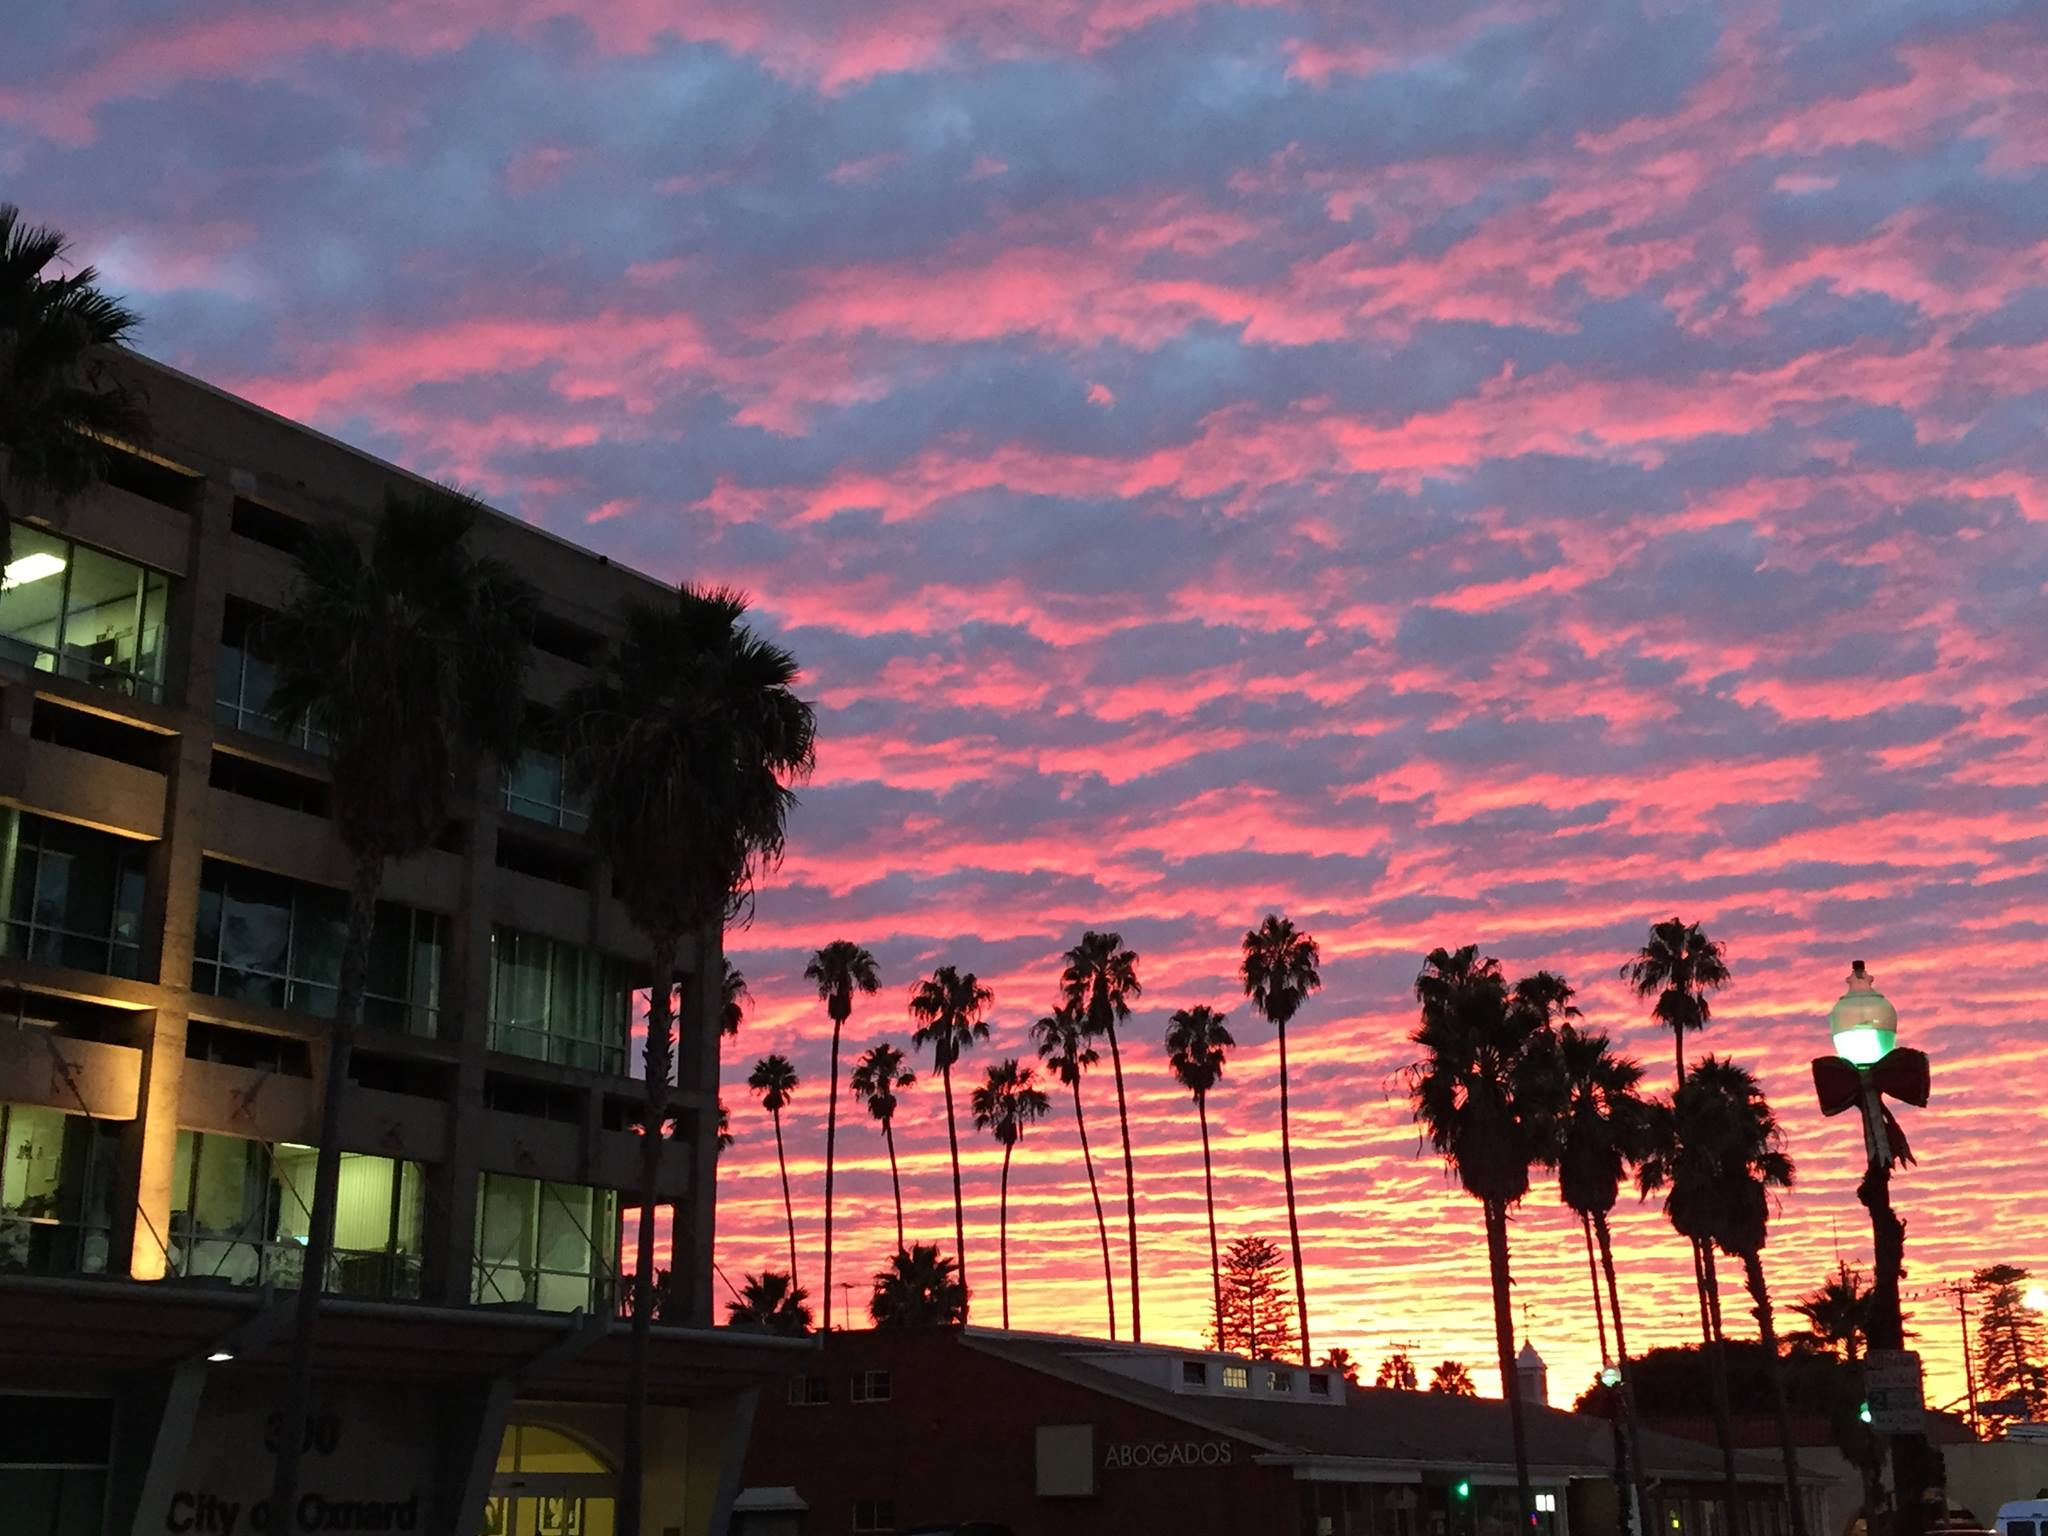 A sunset over Oxnard